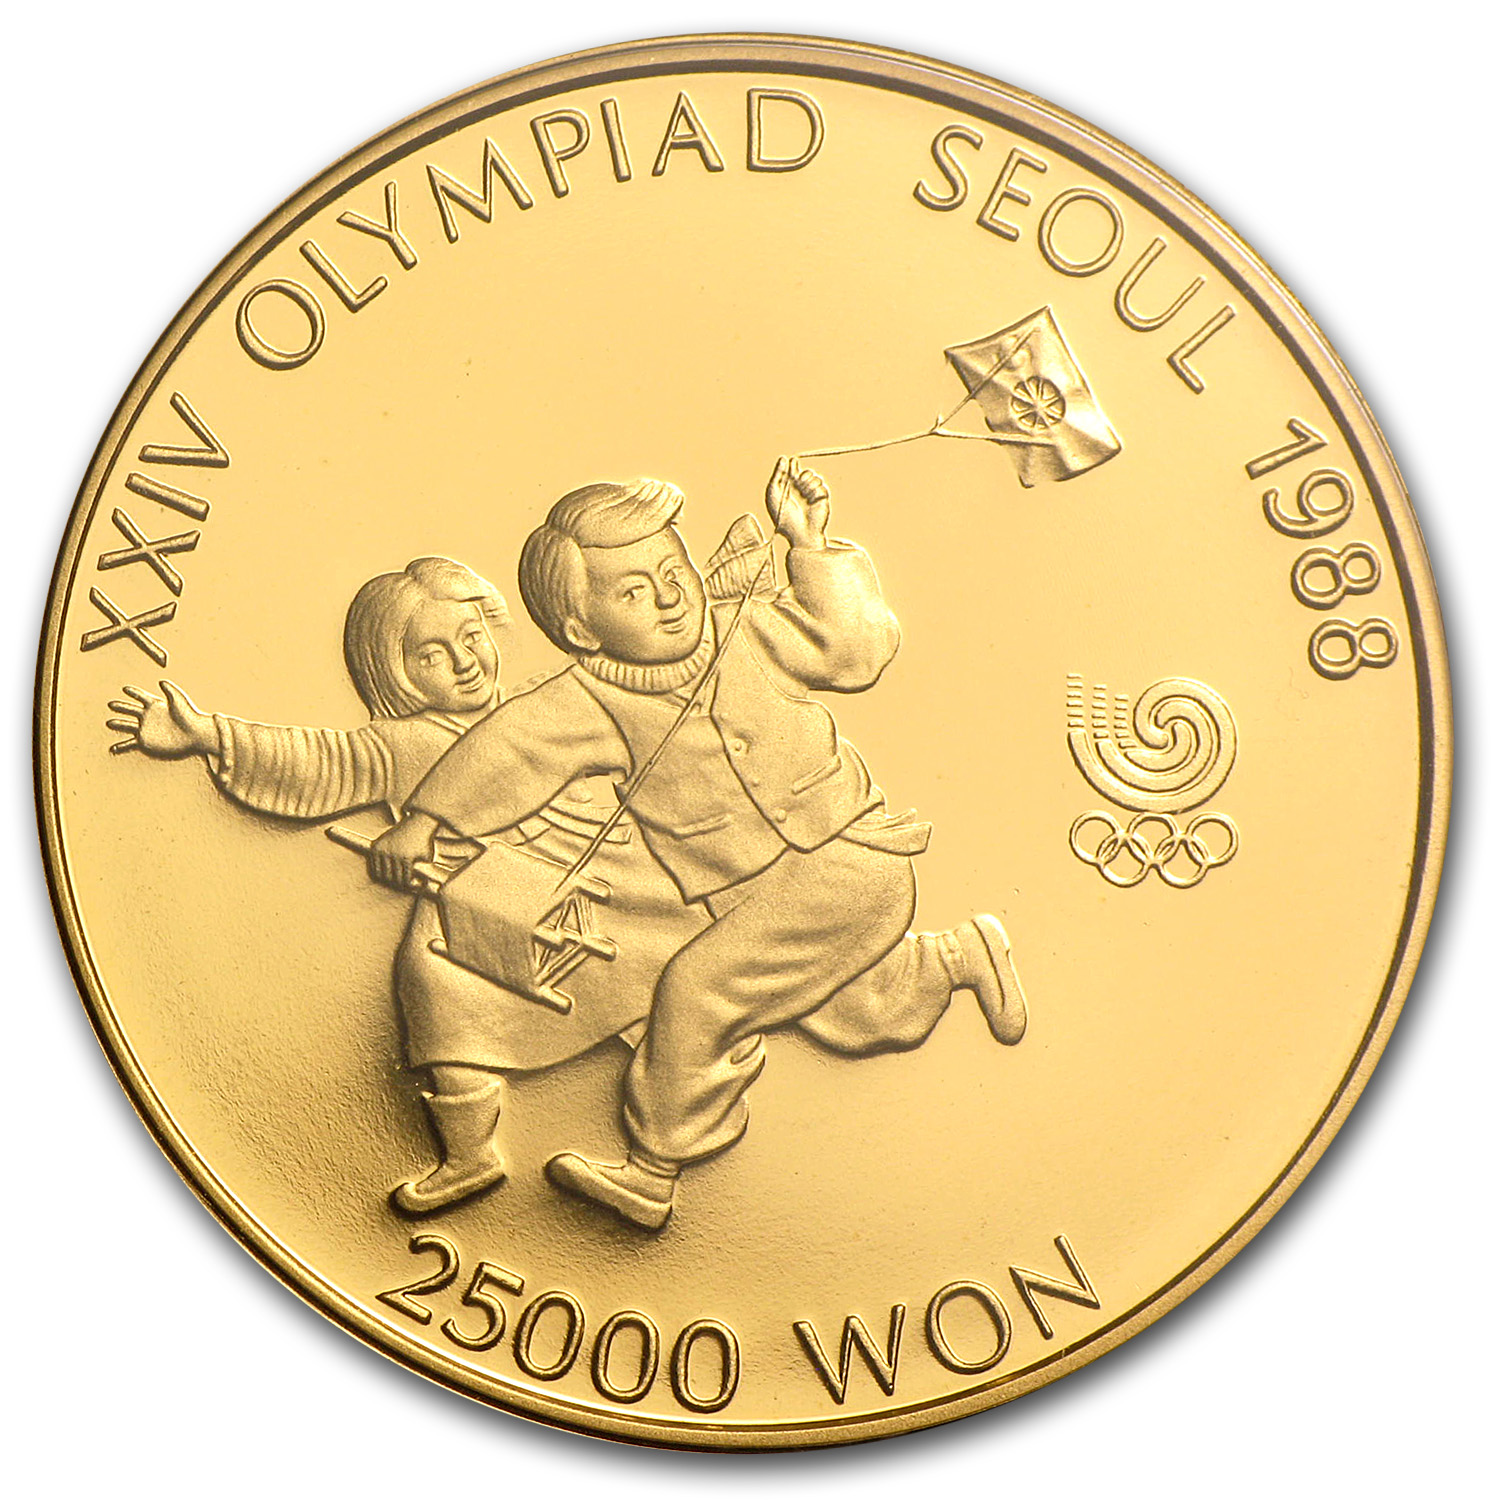 South Korea 1/2 oz Gold 25,000 Won Olympics Proof